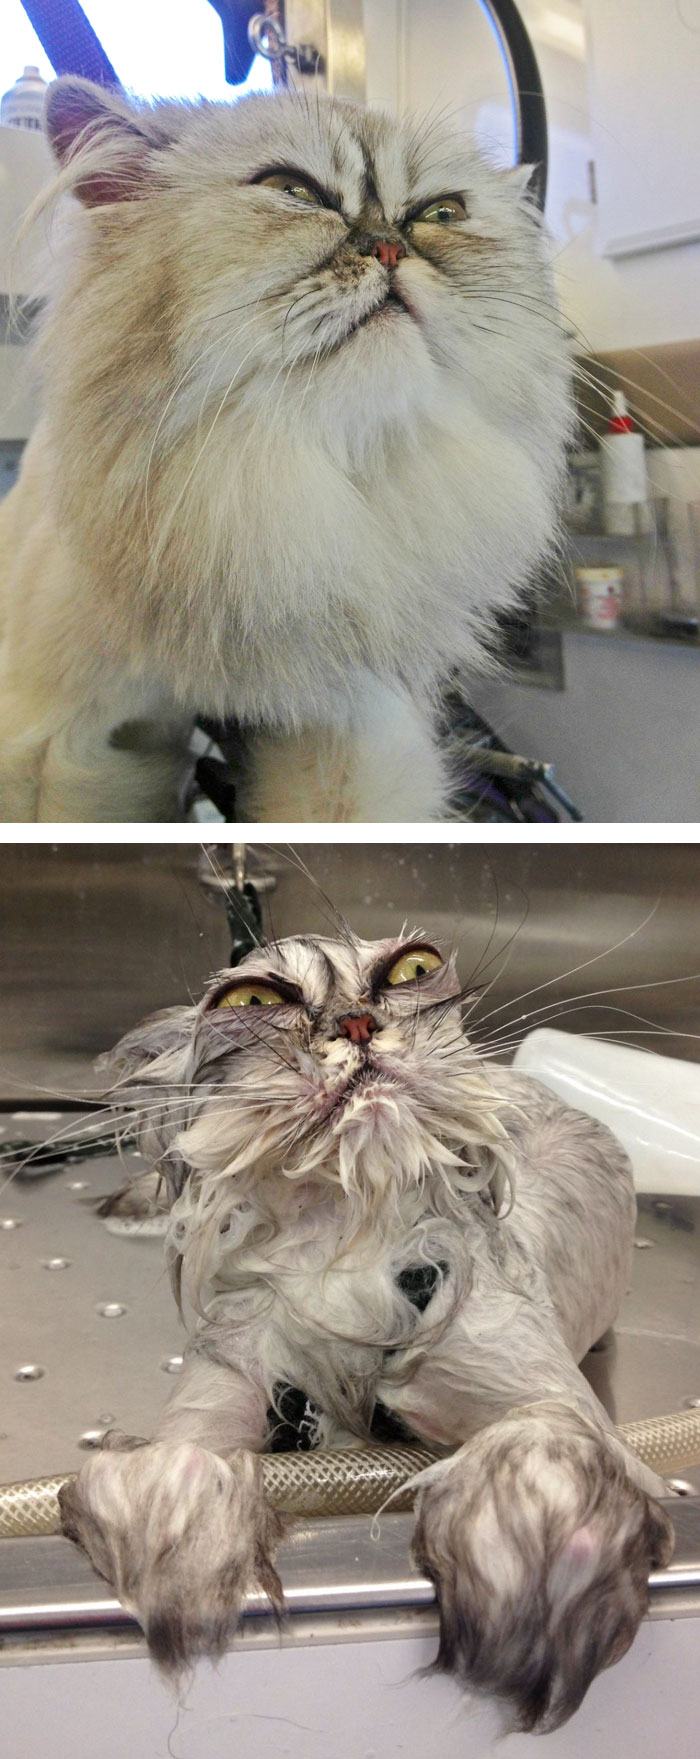 funny-wet-pets-before-after-bath-dogs-cats-49-5728af03c4553__700 (1)